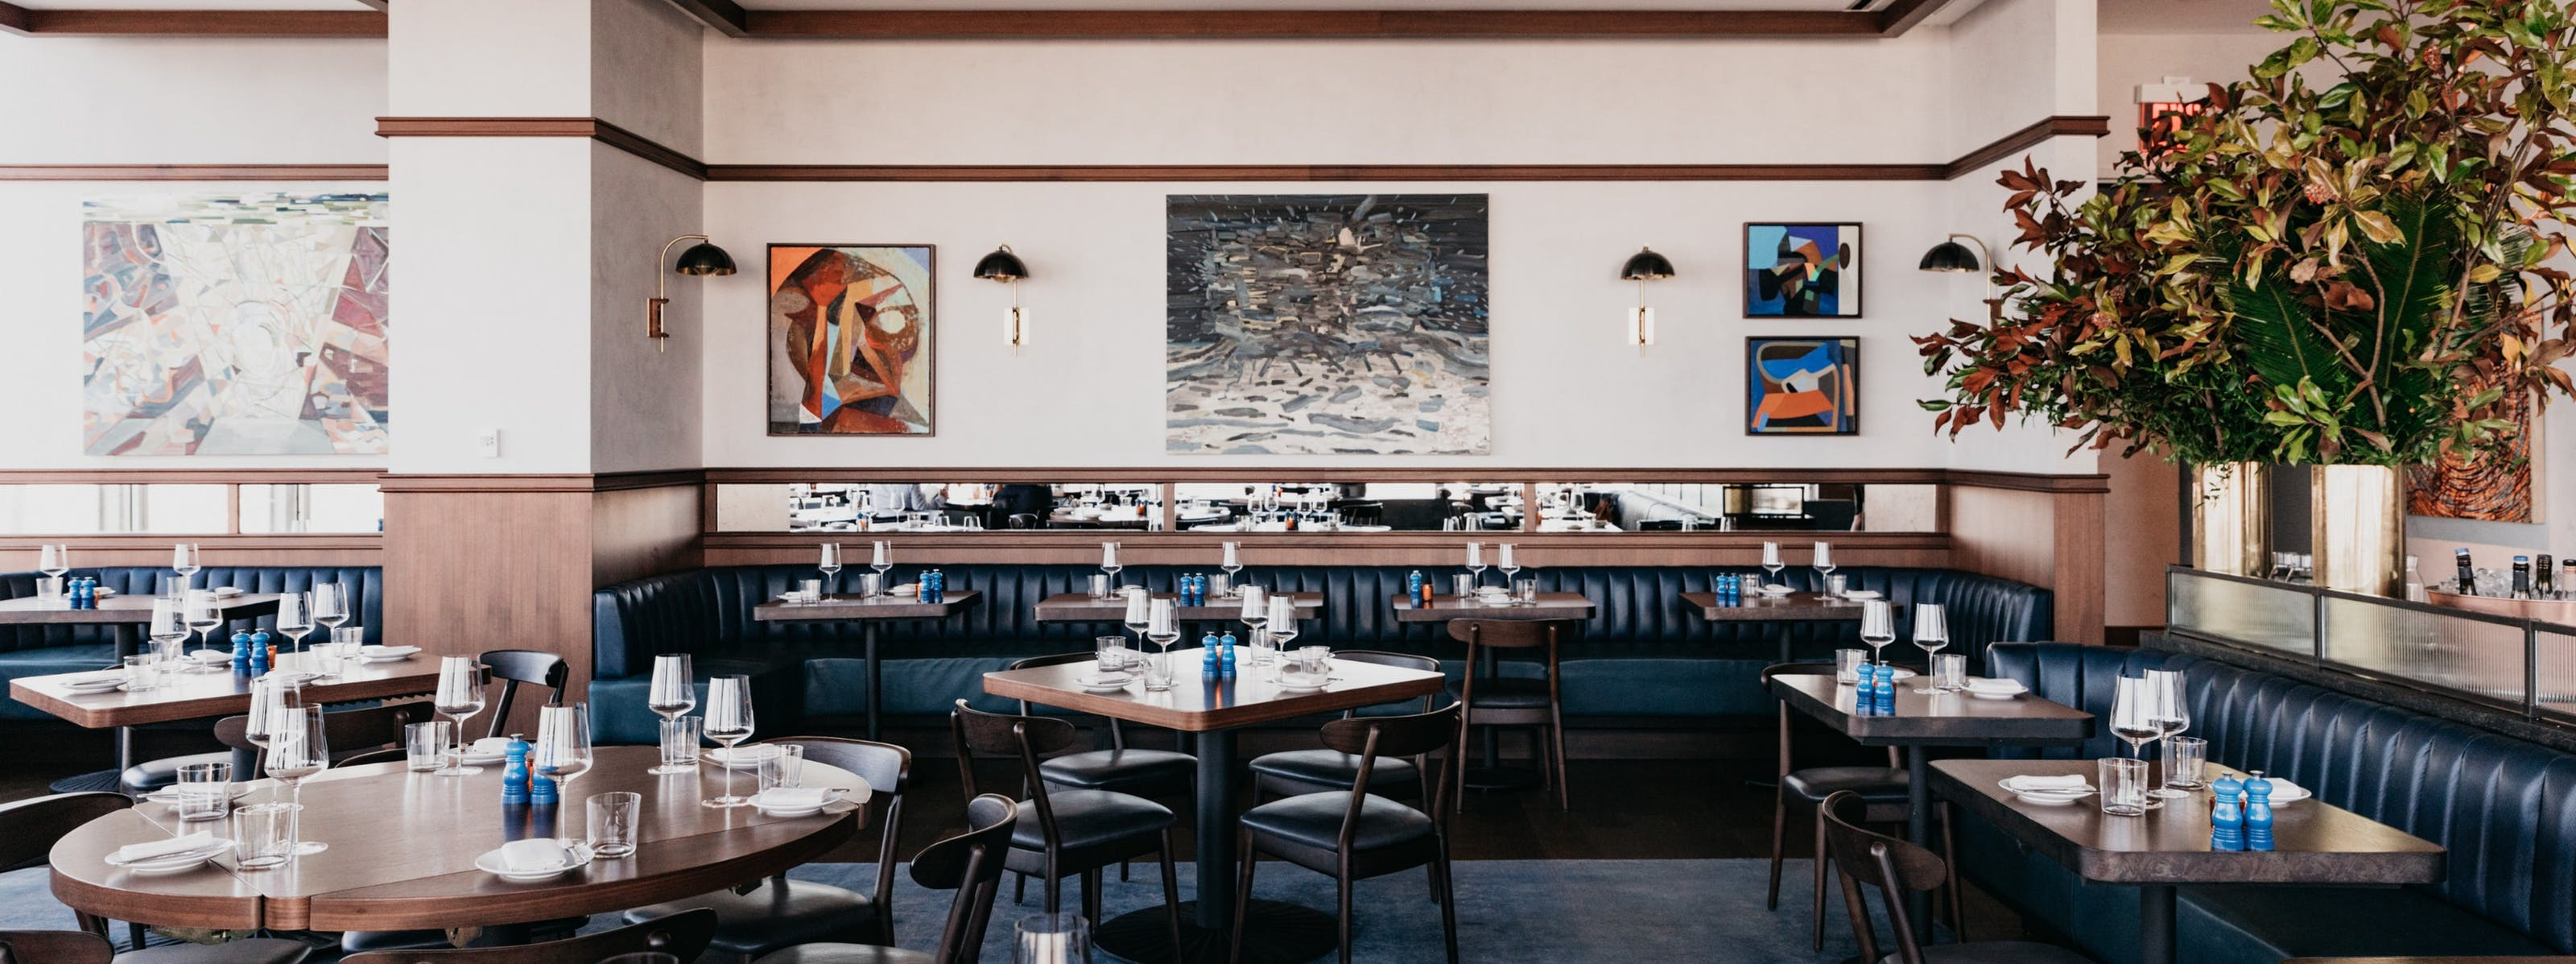 The Best Nyc Restaurants For Date Night New York The Infatuation